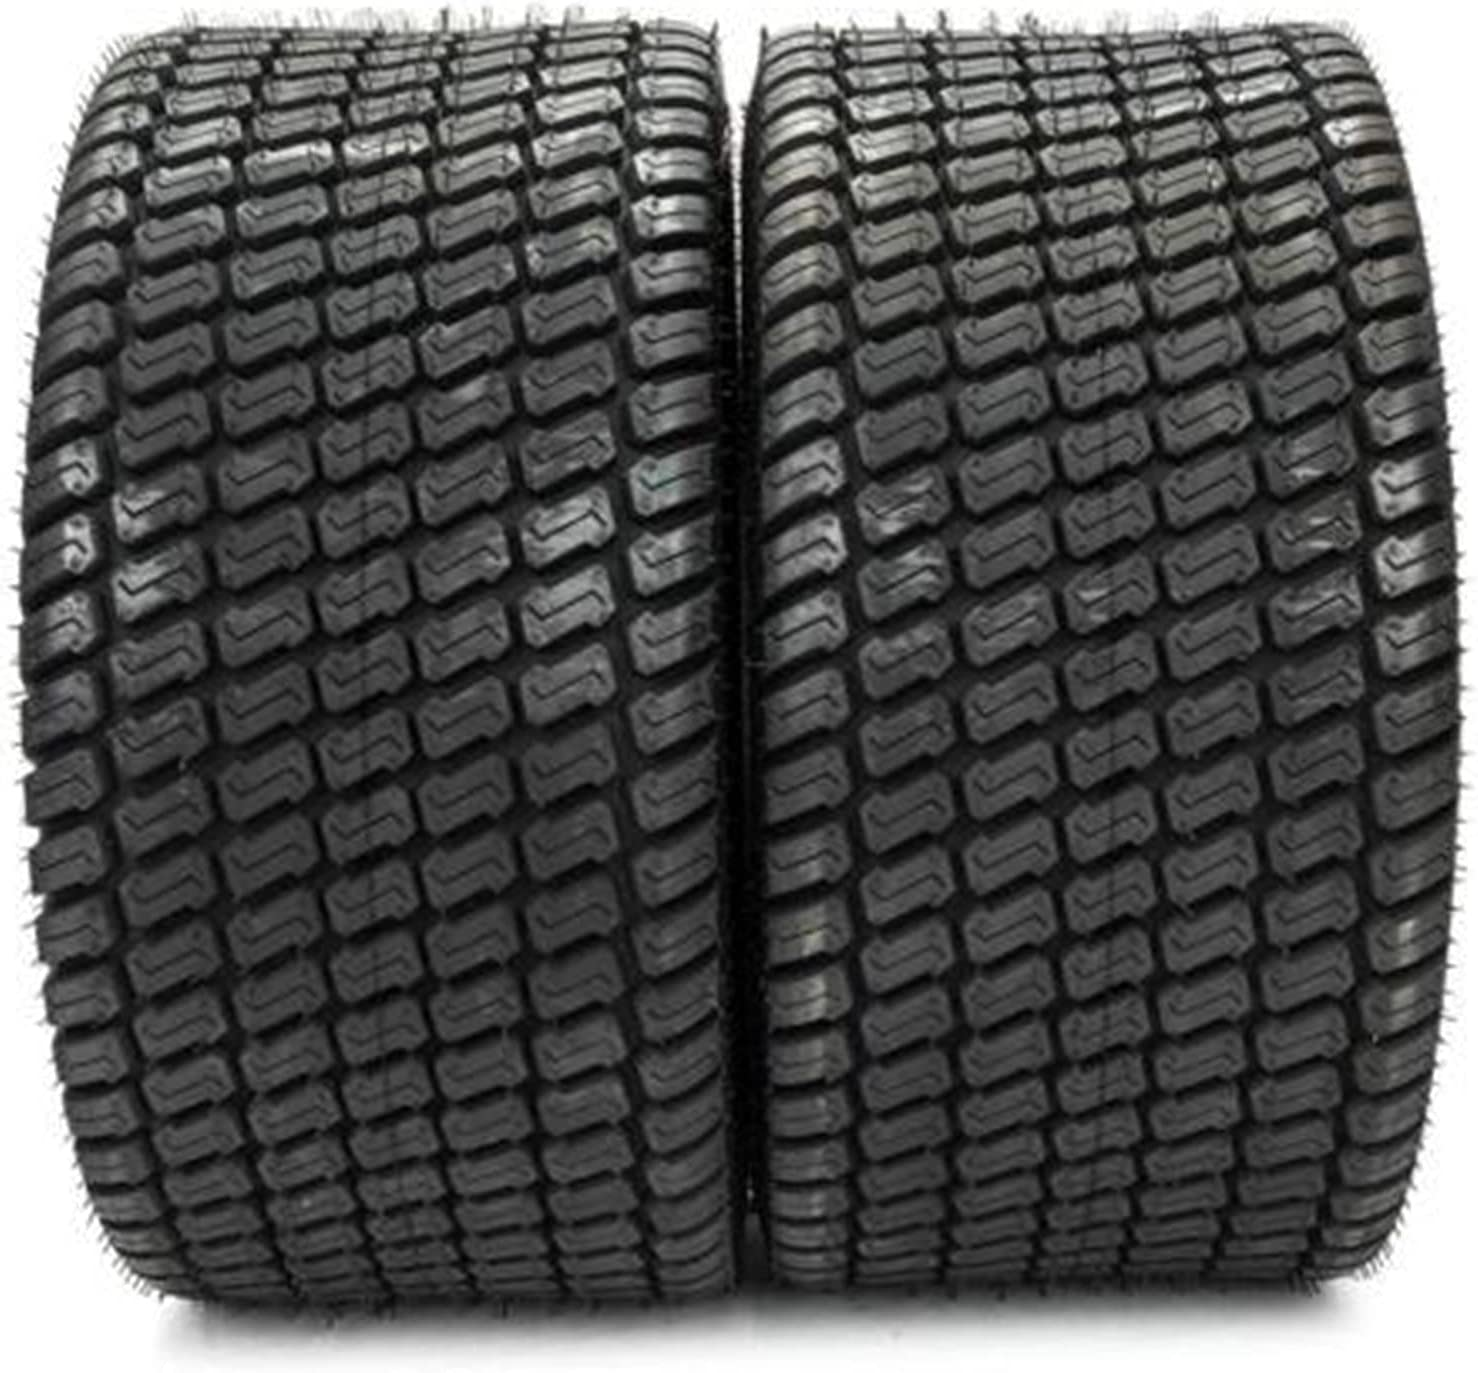 Set of 2 New 20X10.00-8 LRB 4 Ply 20X10-8 Tires, Accesorios para